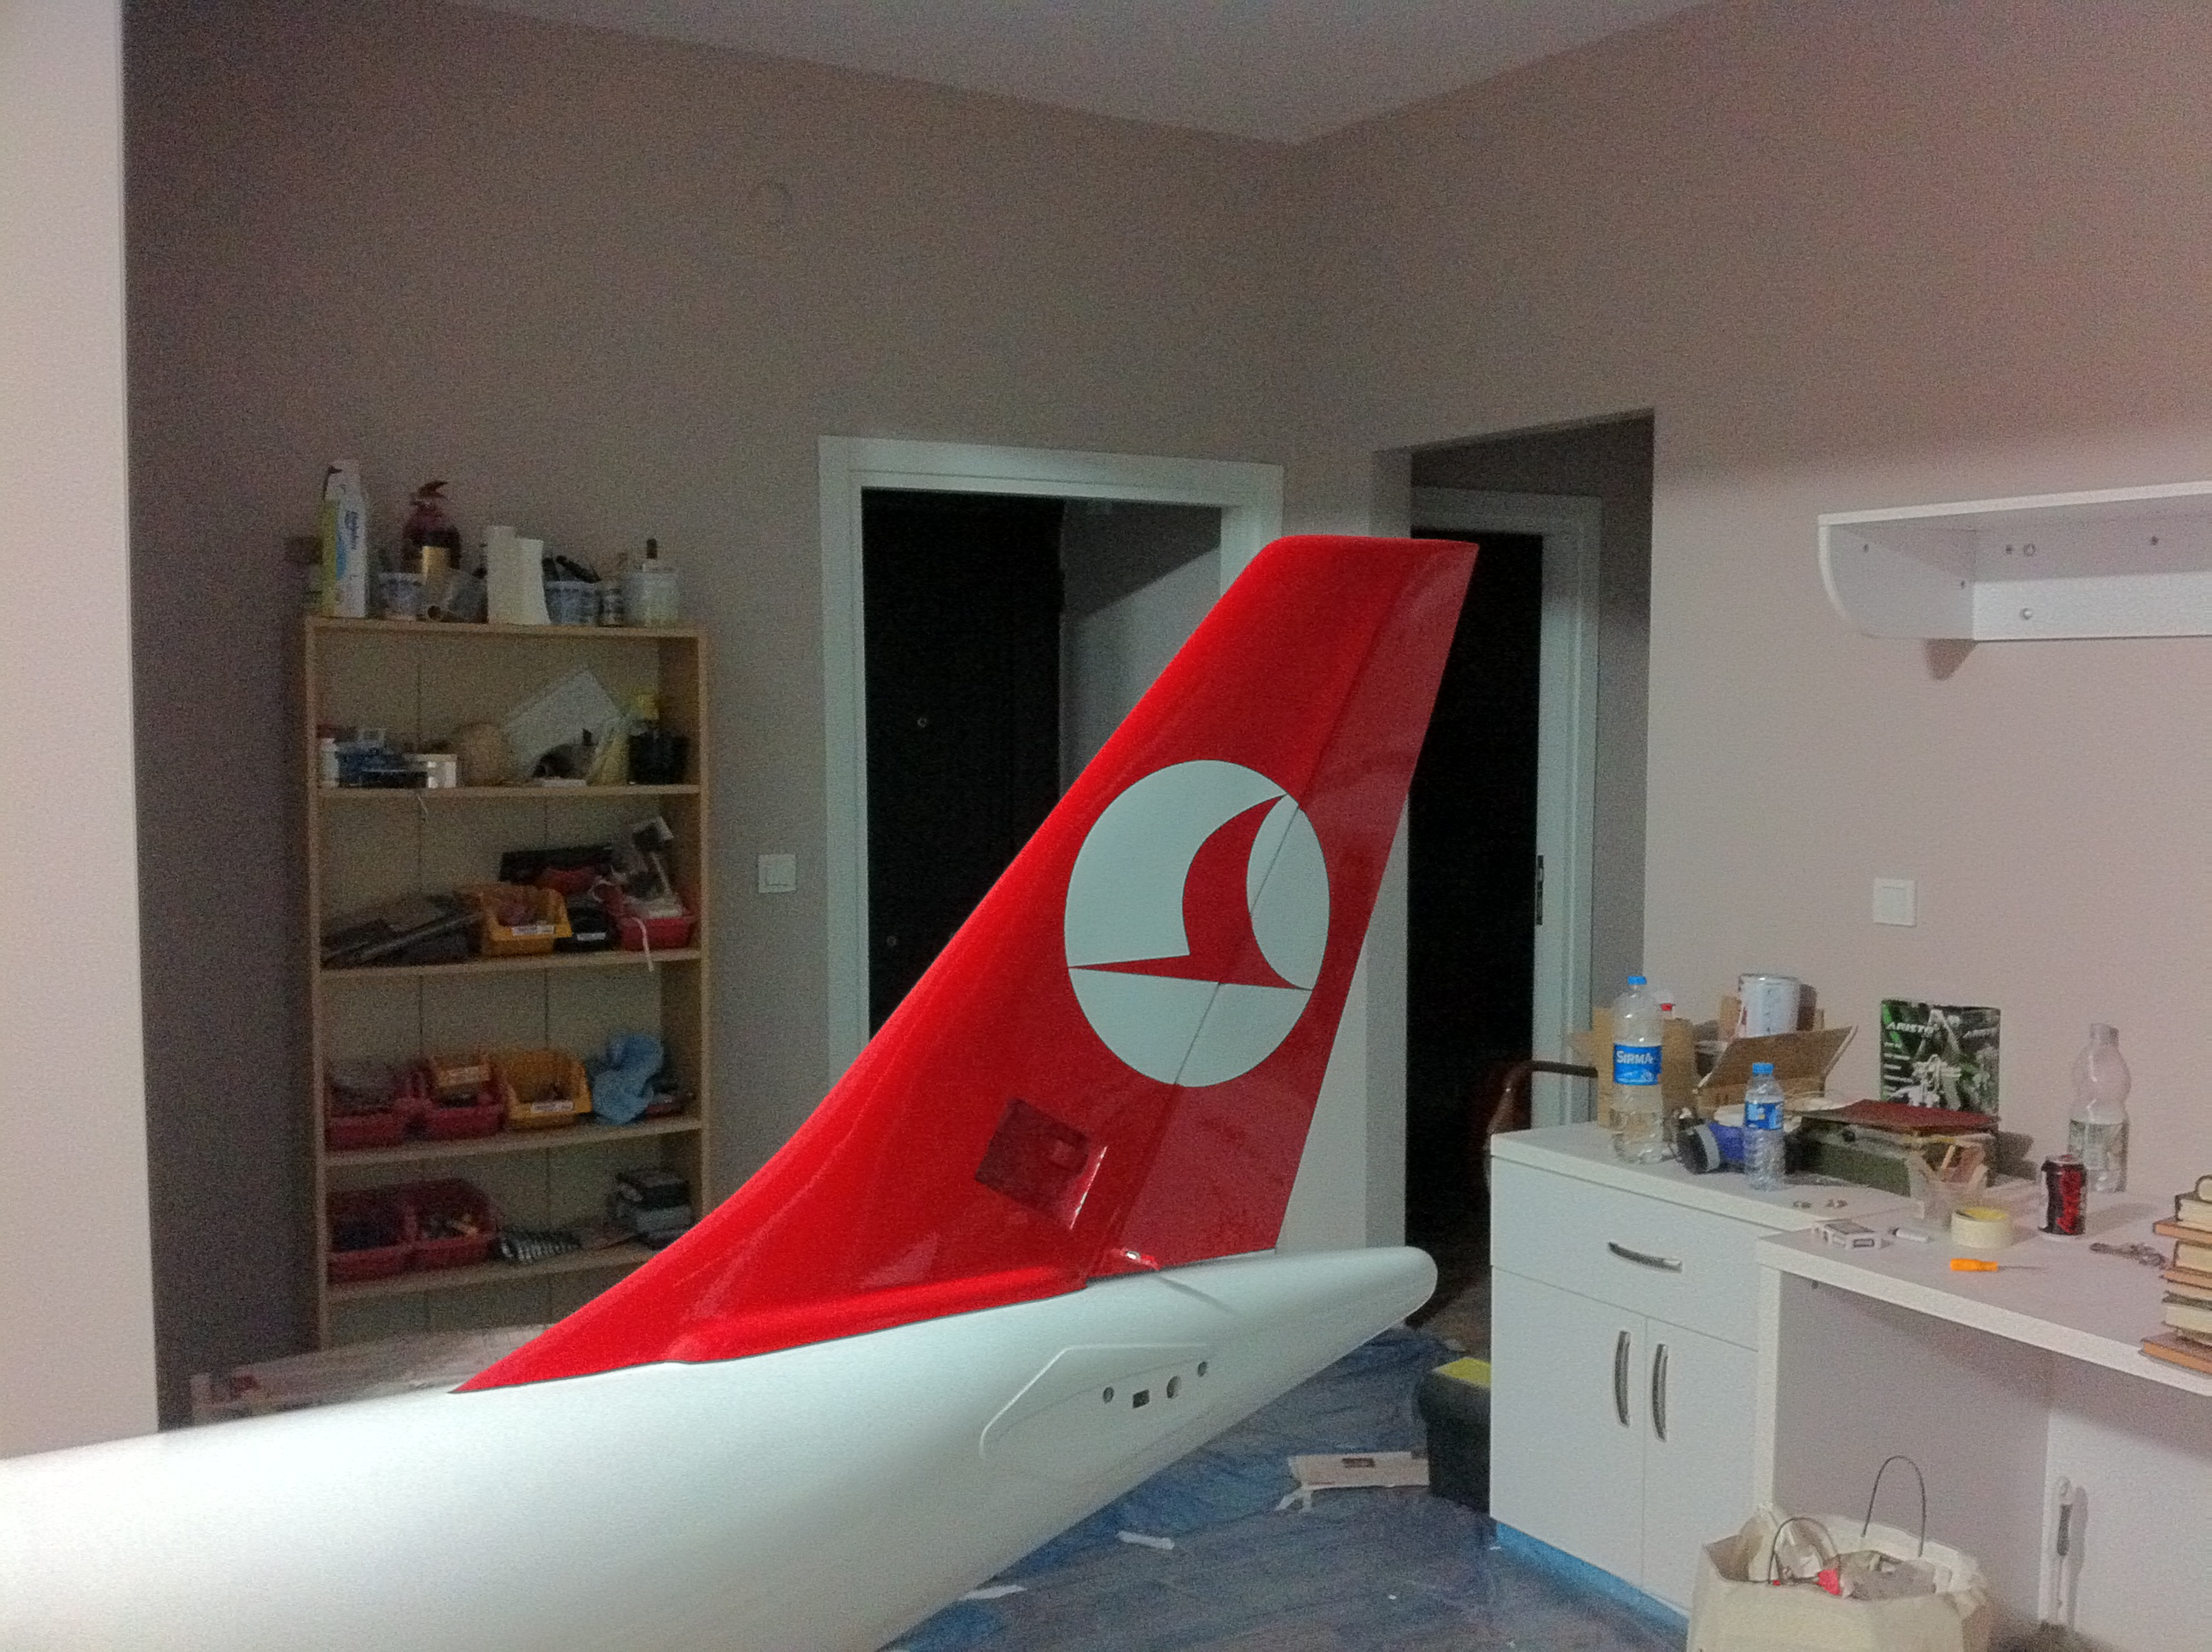 fin and rudder painted